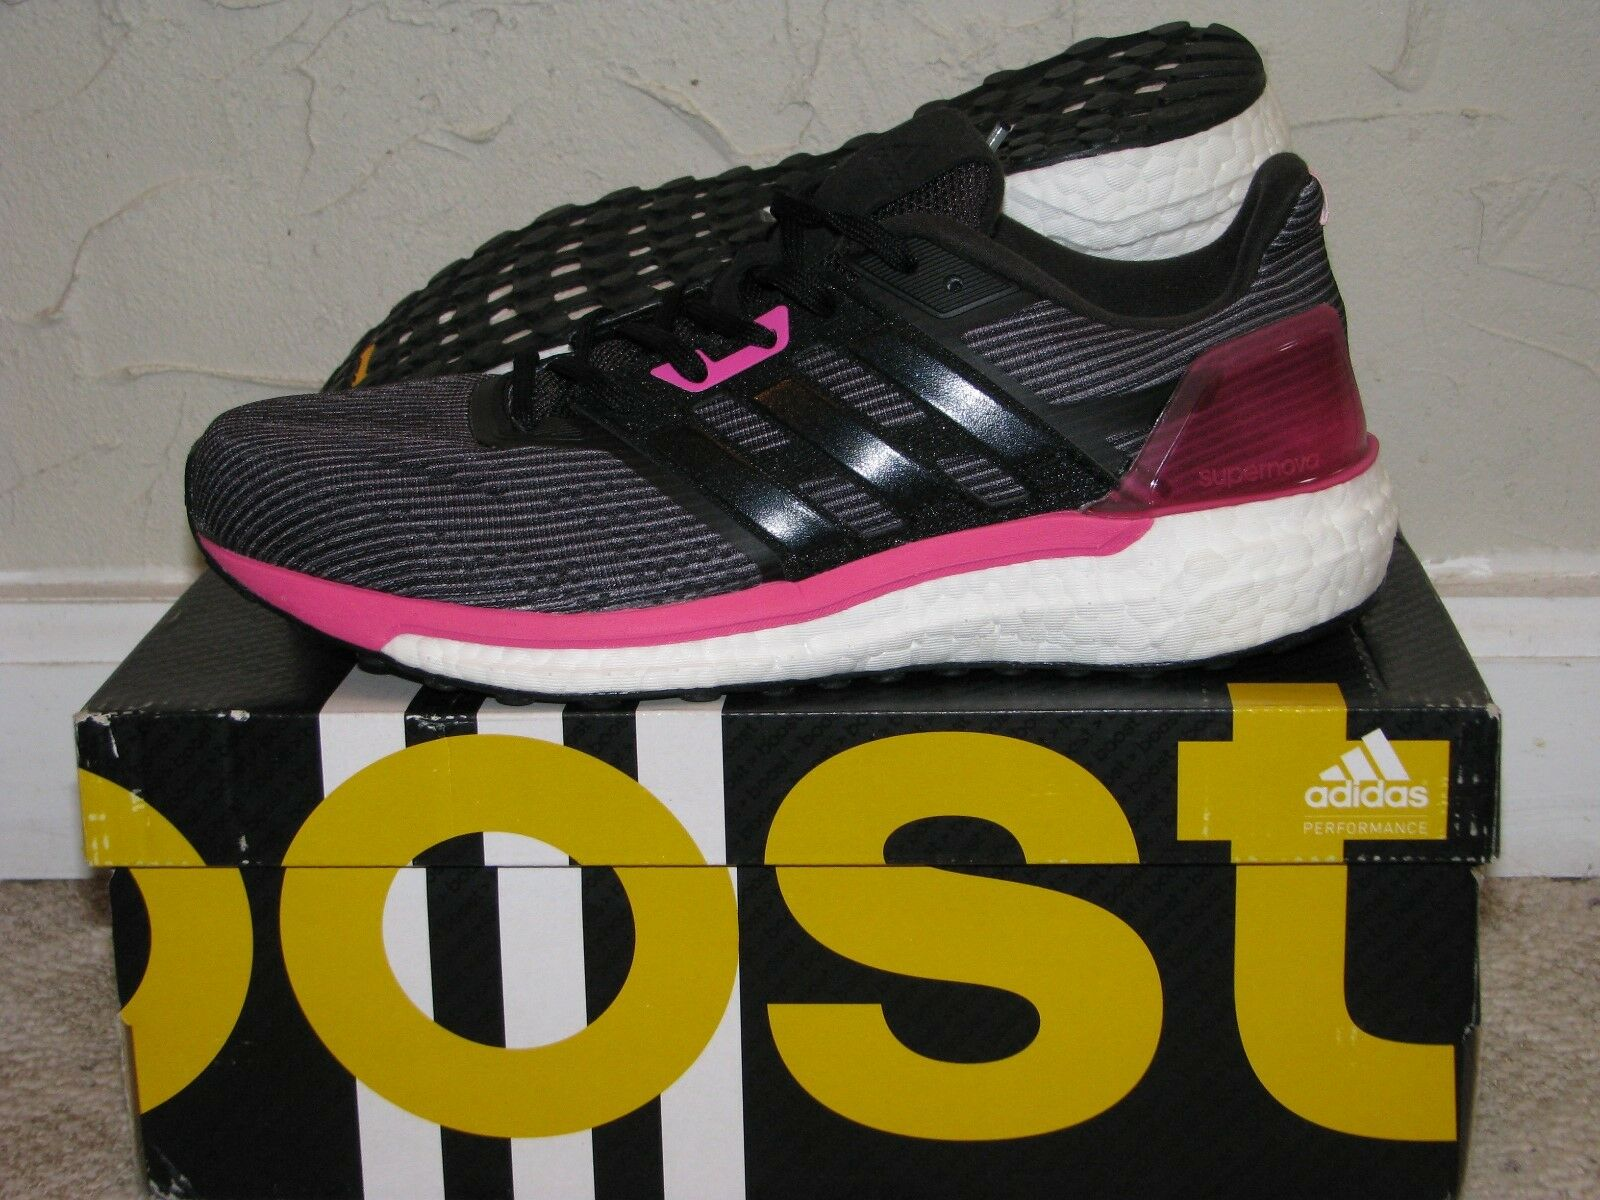 adidas Supernova Boost Utility Black / Shock Pink Womens Size 8.5 DS NEW! BB3483